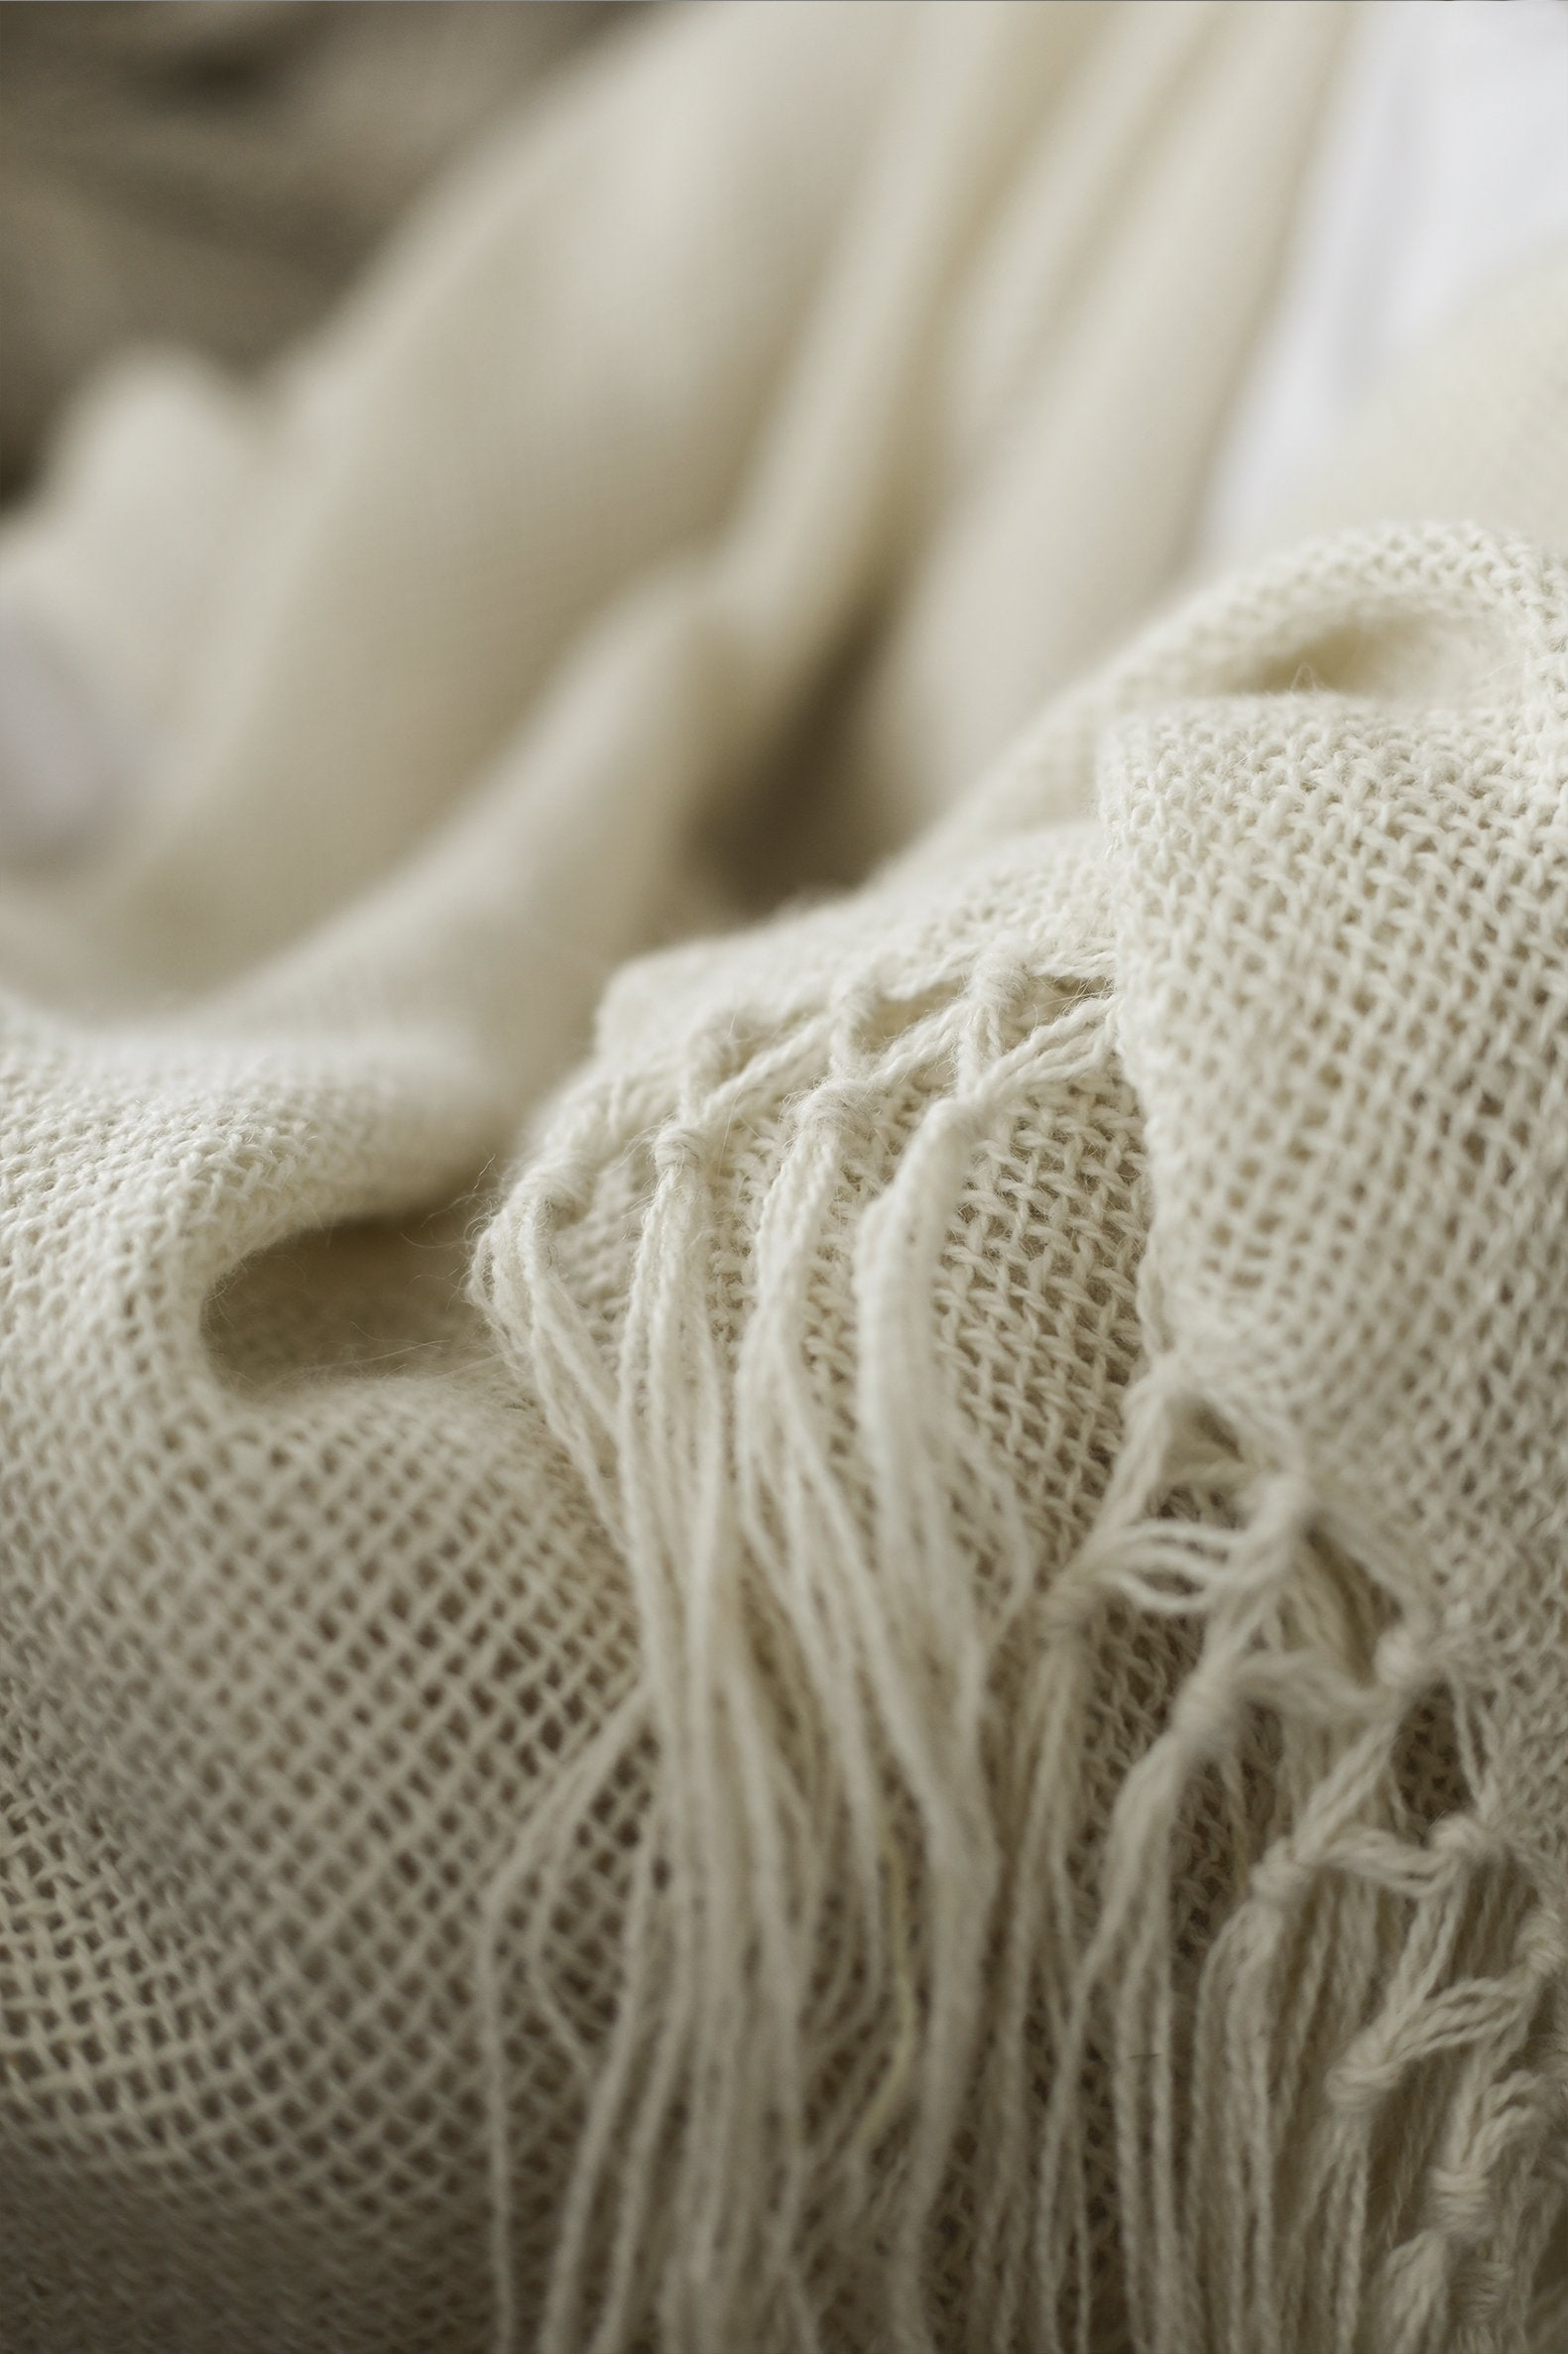 Close up of Fringe Ends of Natural White Llama Handwoven Poncho.